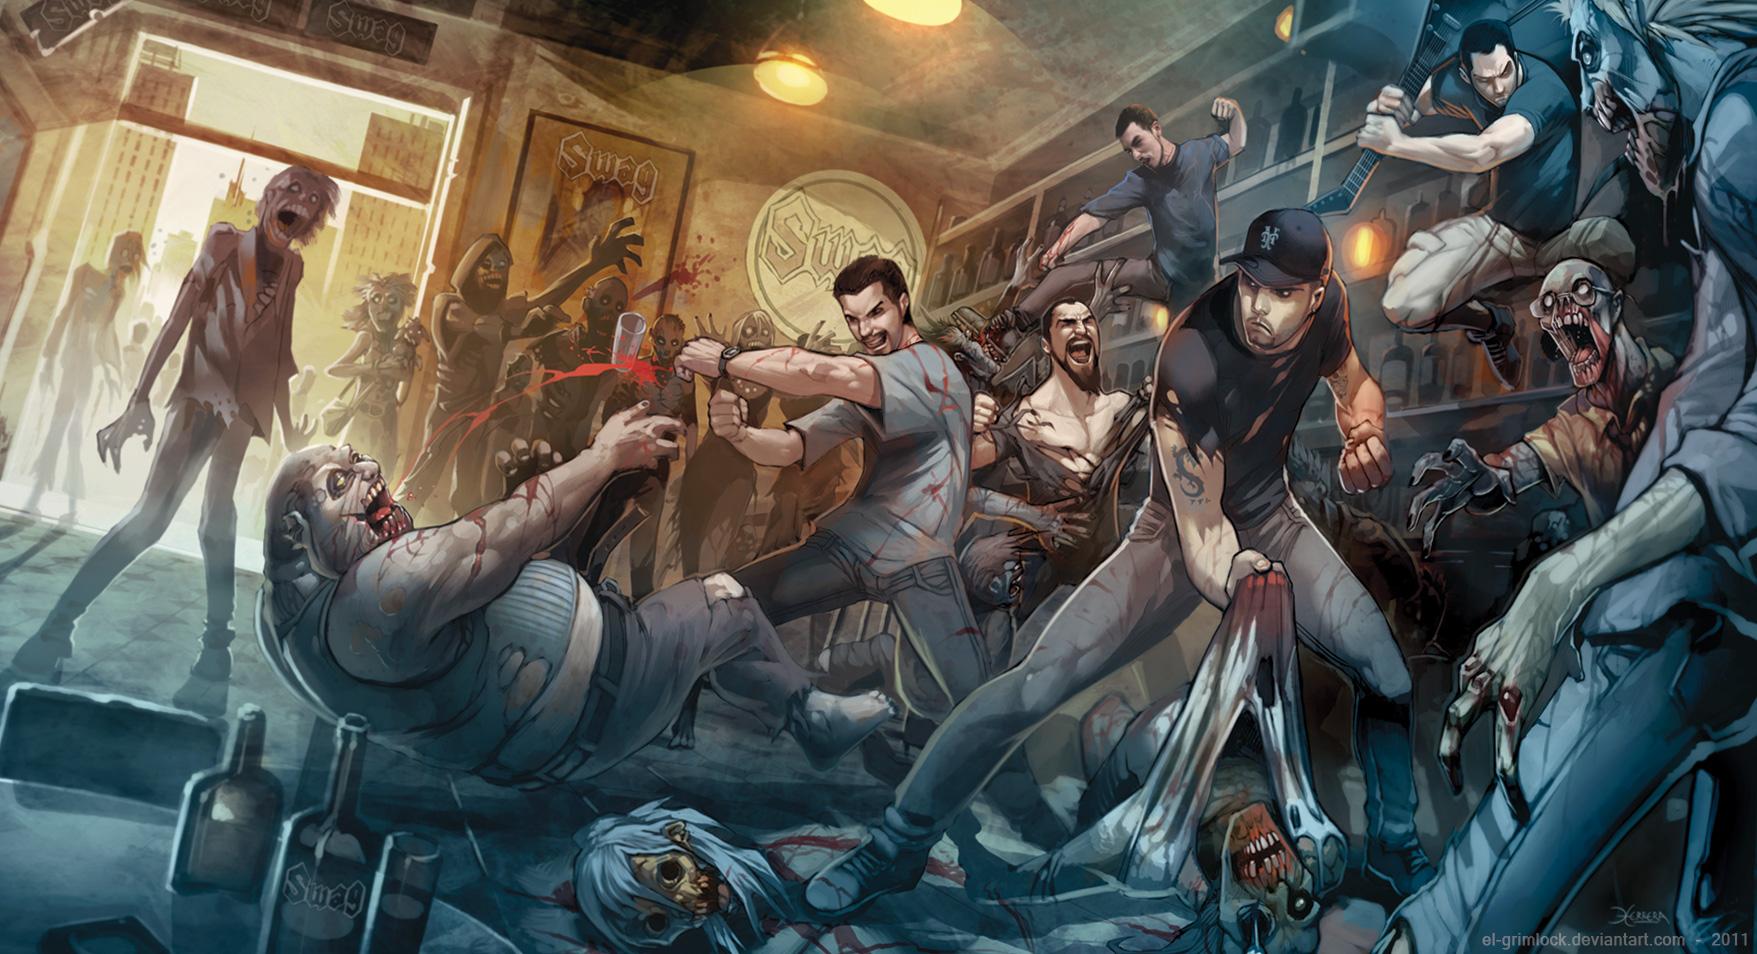 1.5 Let's get this party started, the flesh make me bad. Zombies_everywhere_by_el_grimlock-d4801zr